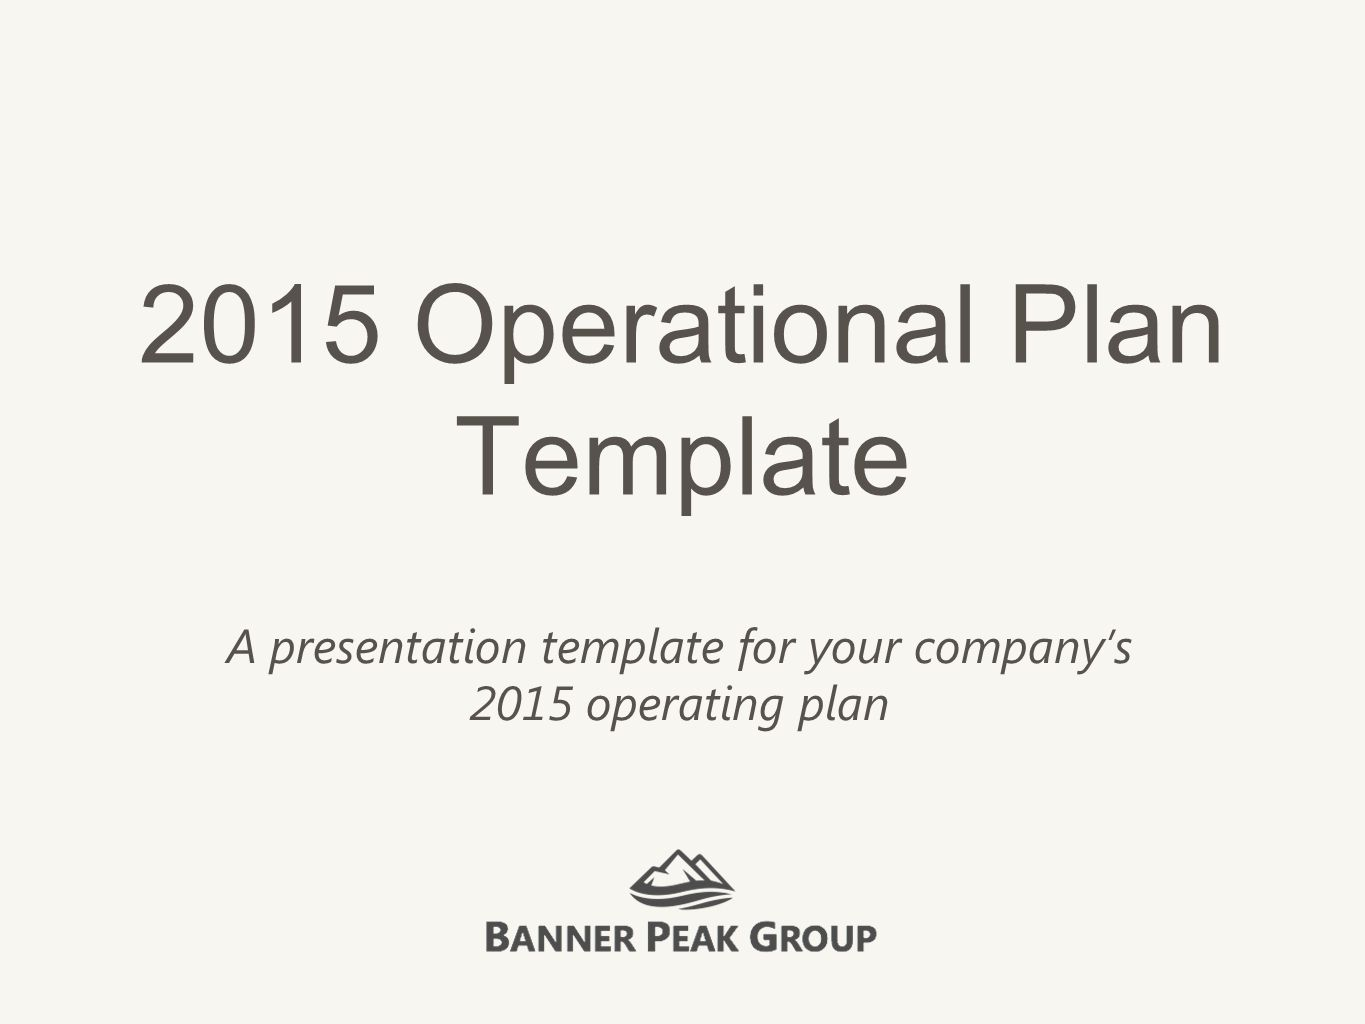 2015 Operational Plan Template Ppt Video Online Download